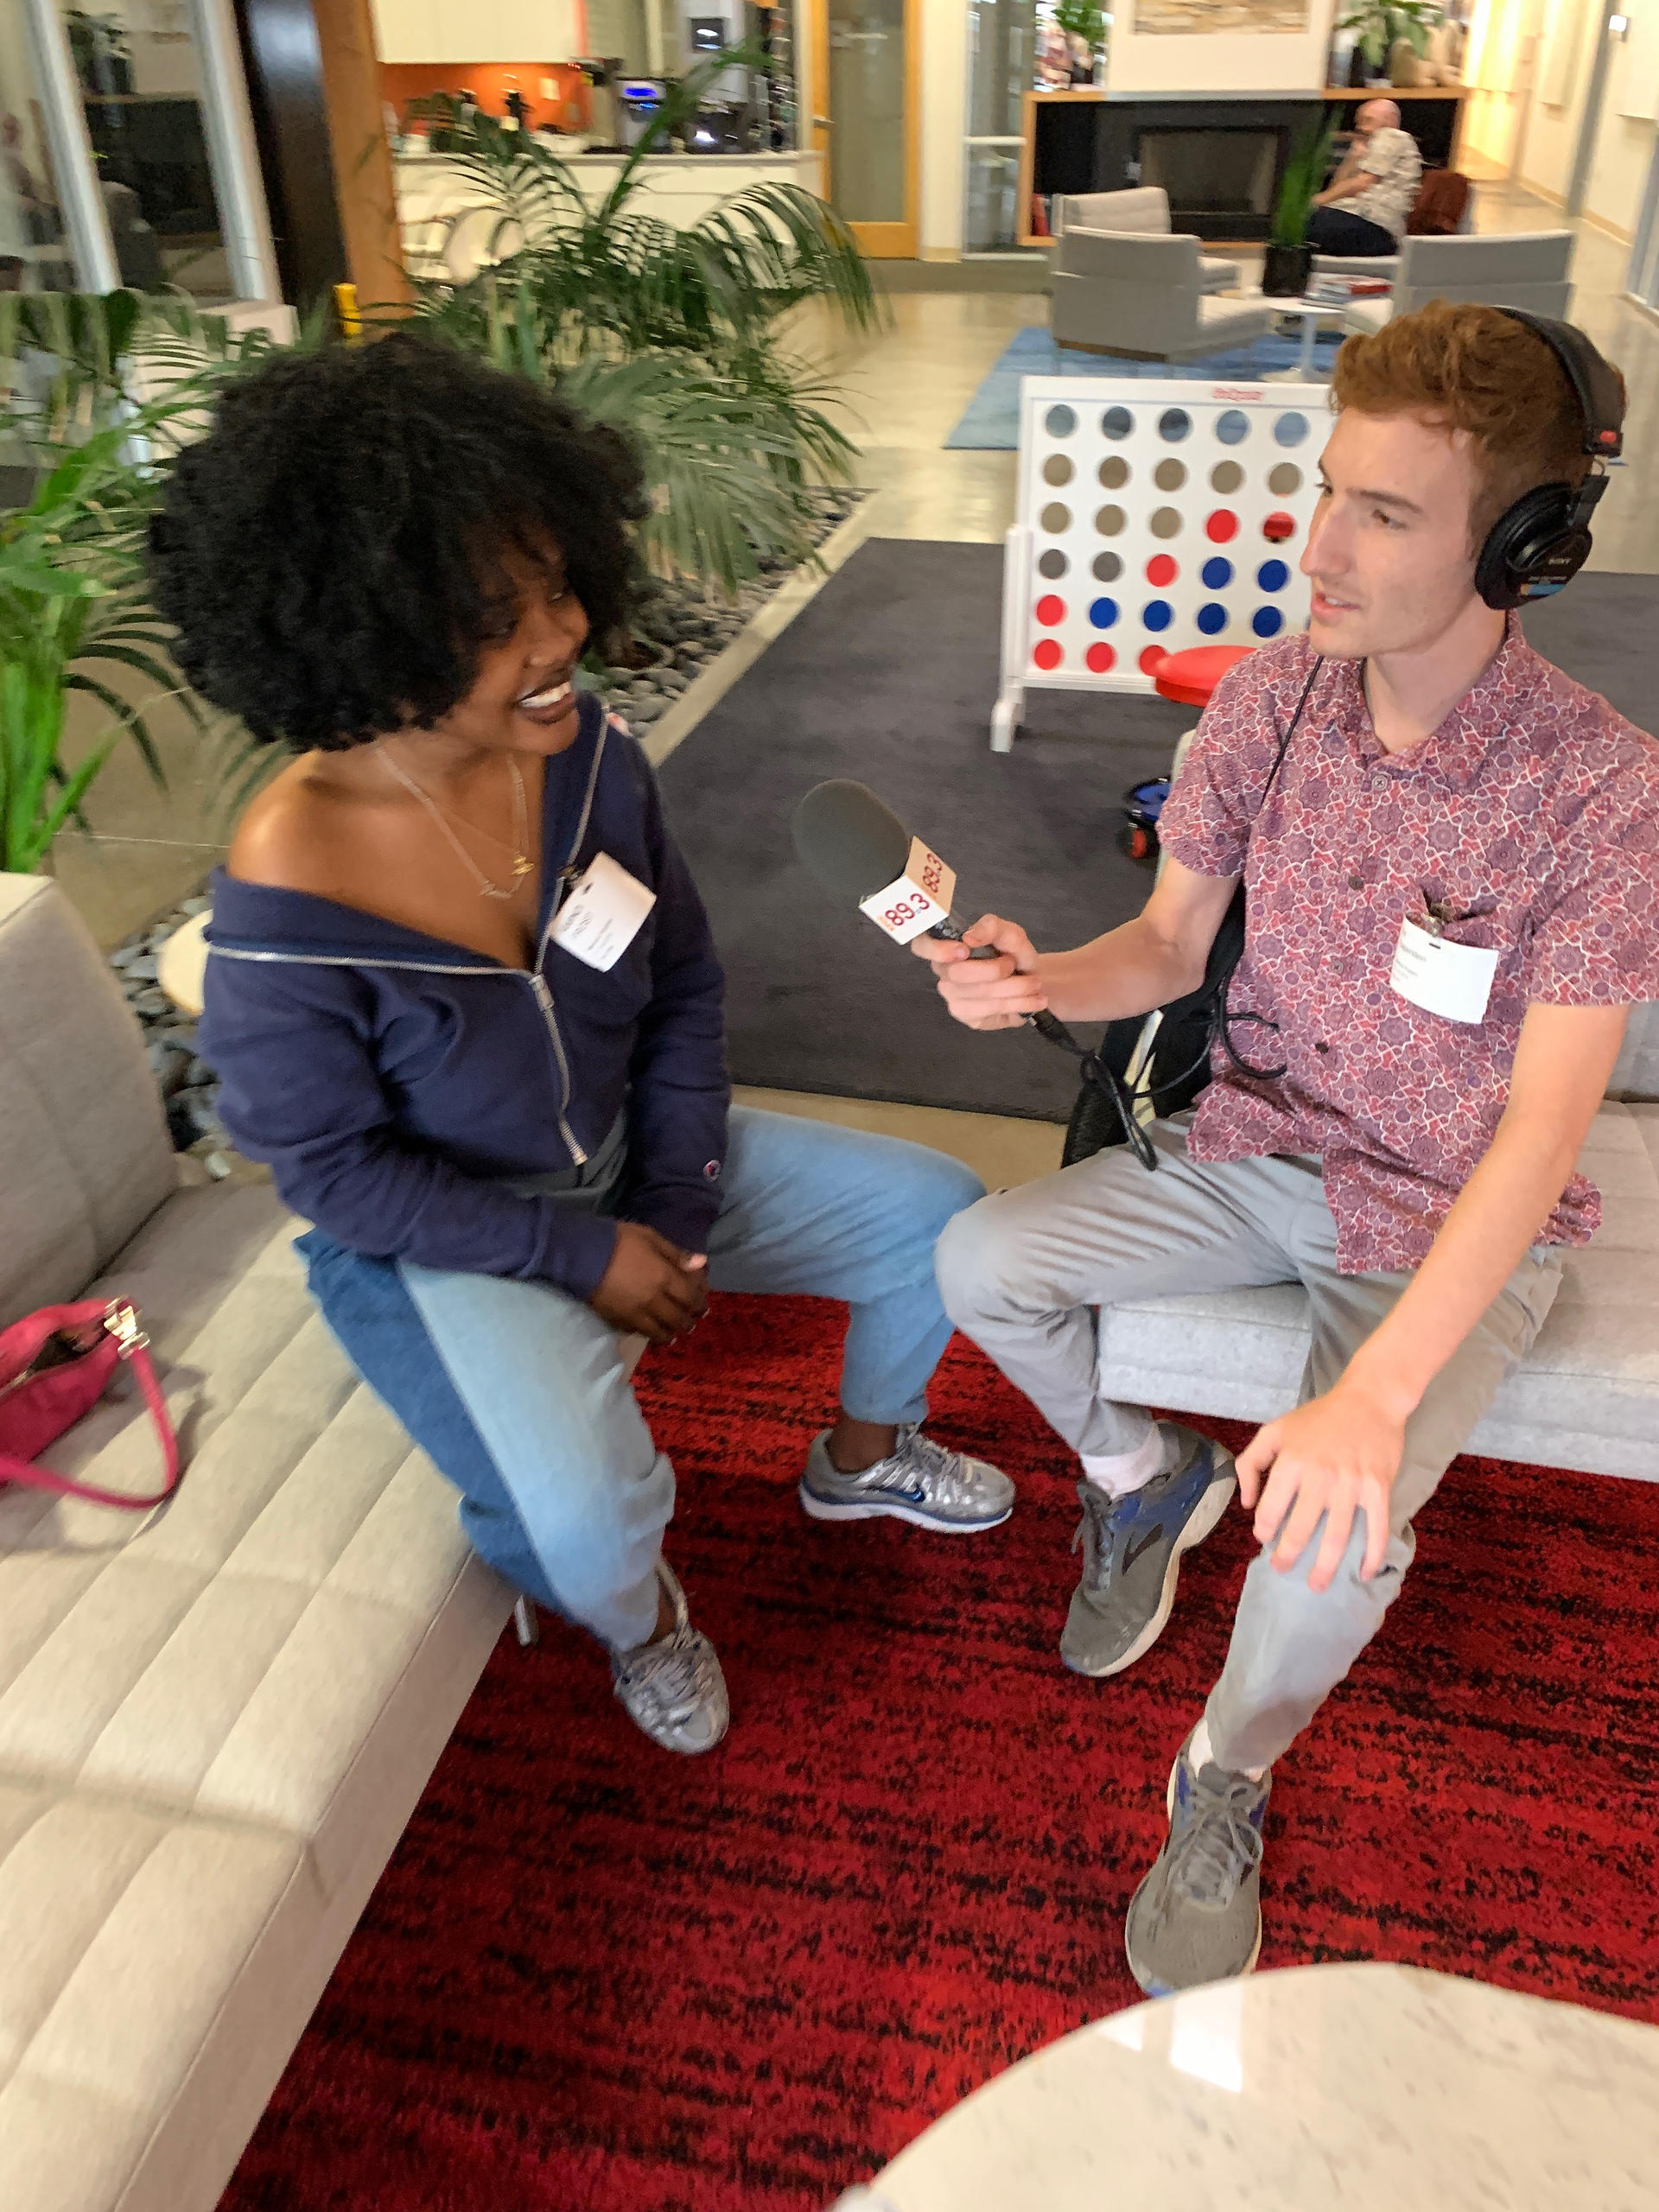 Interviewing musician Amindi K. Fro$t at NPR West in Culver City, CA